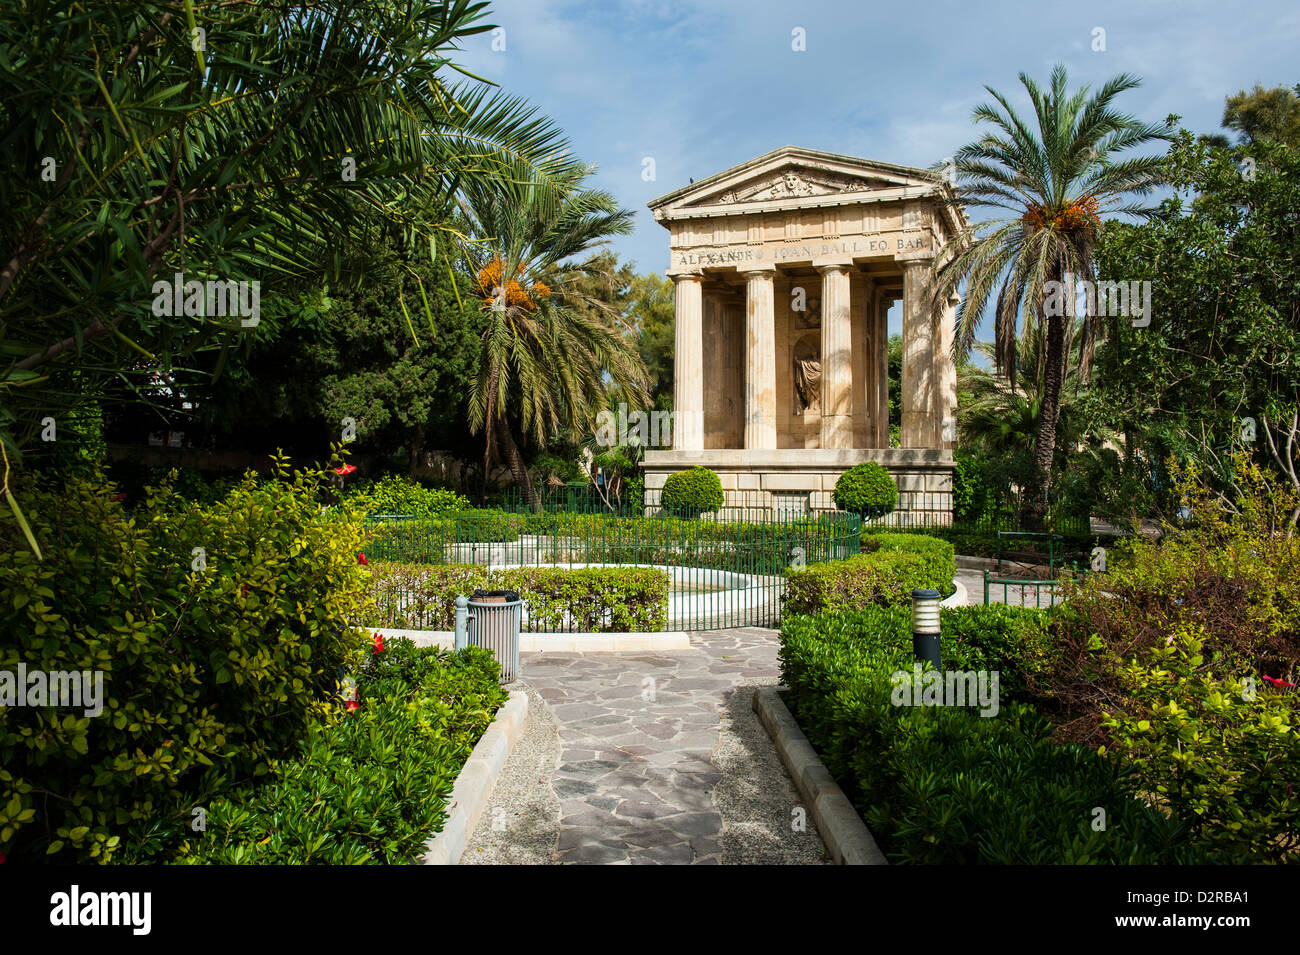 Jardins Barrakka inférieur et l'Alexander Ball memorial temple, Valetta, UNESCO World Heritage Site, Malta, Photo Stock